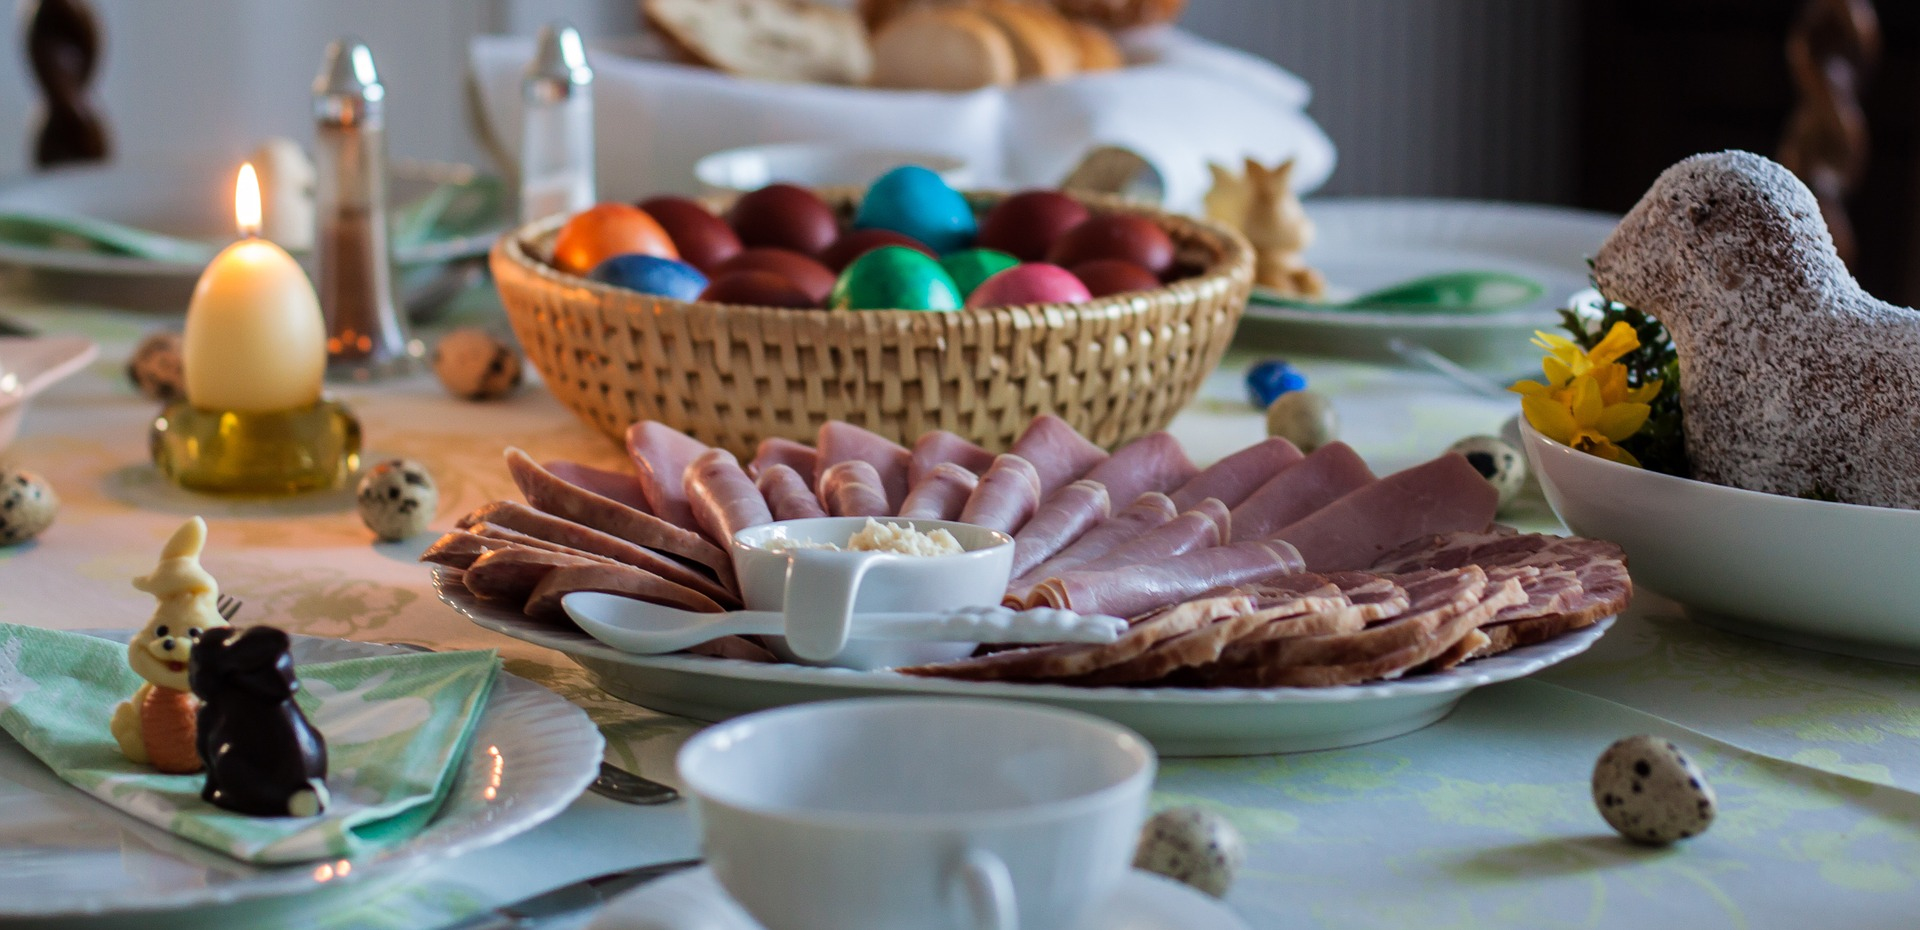 easter-breakfast-1181632_1920.jpg